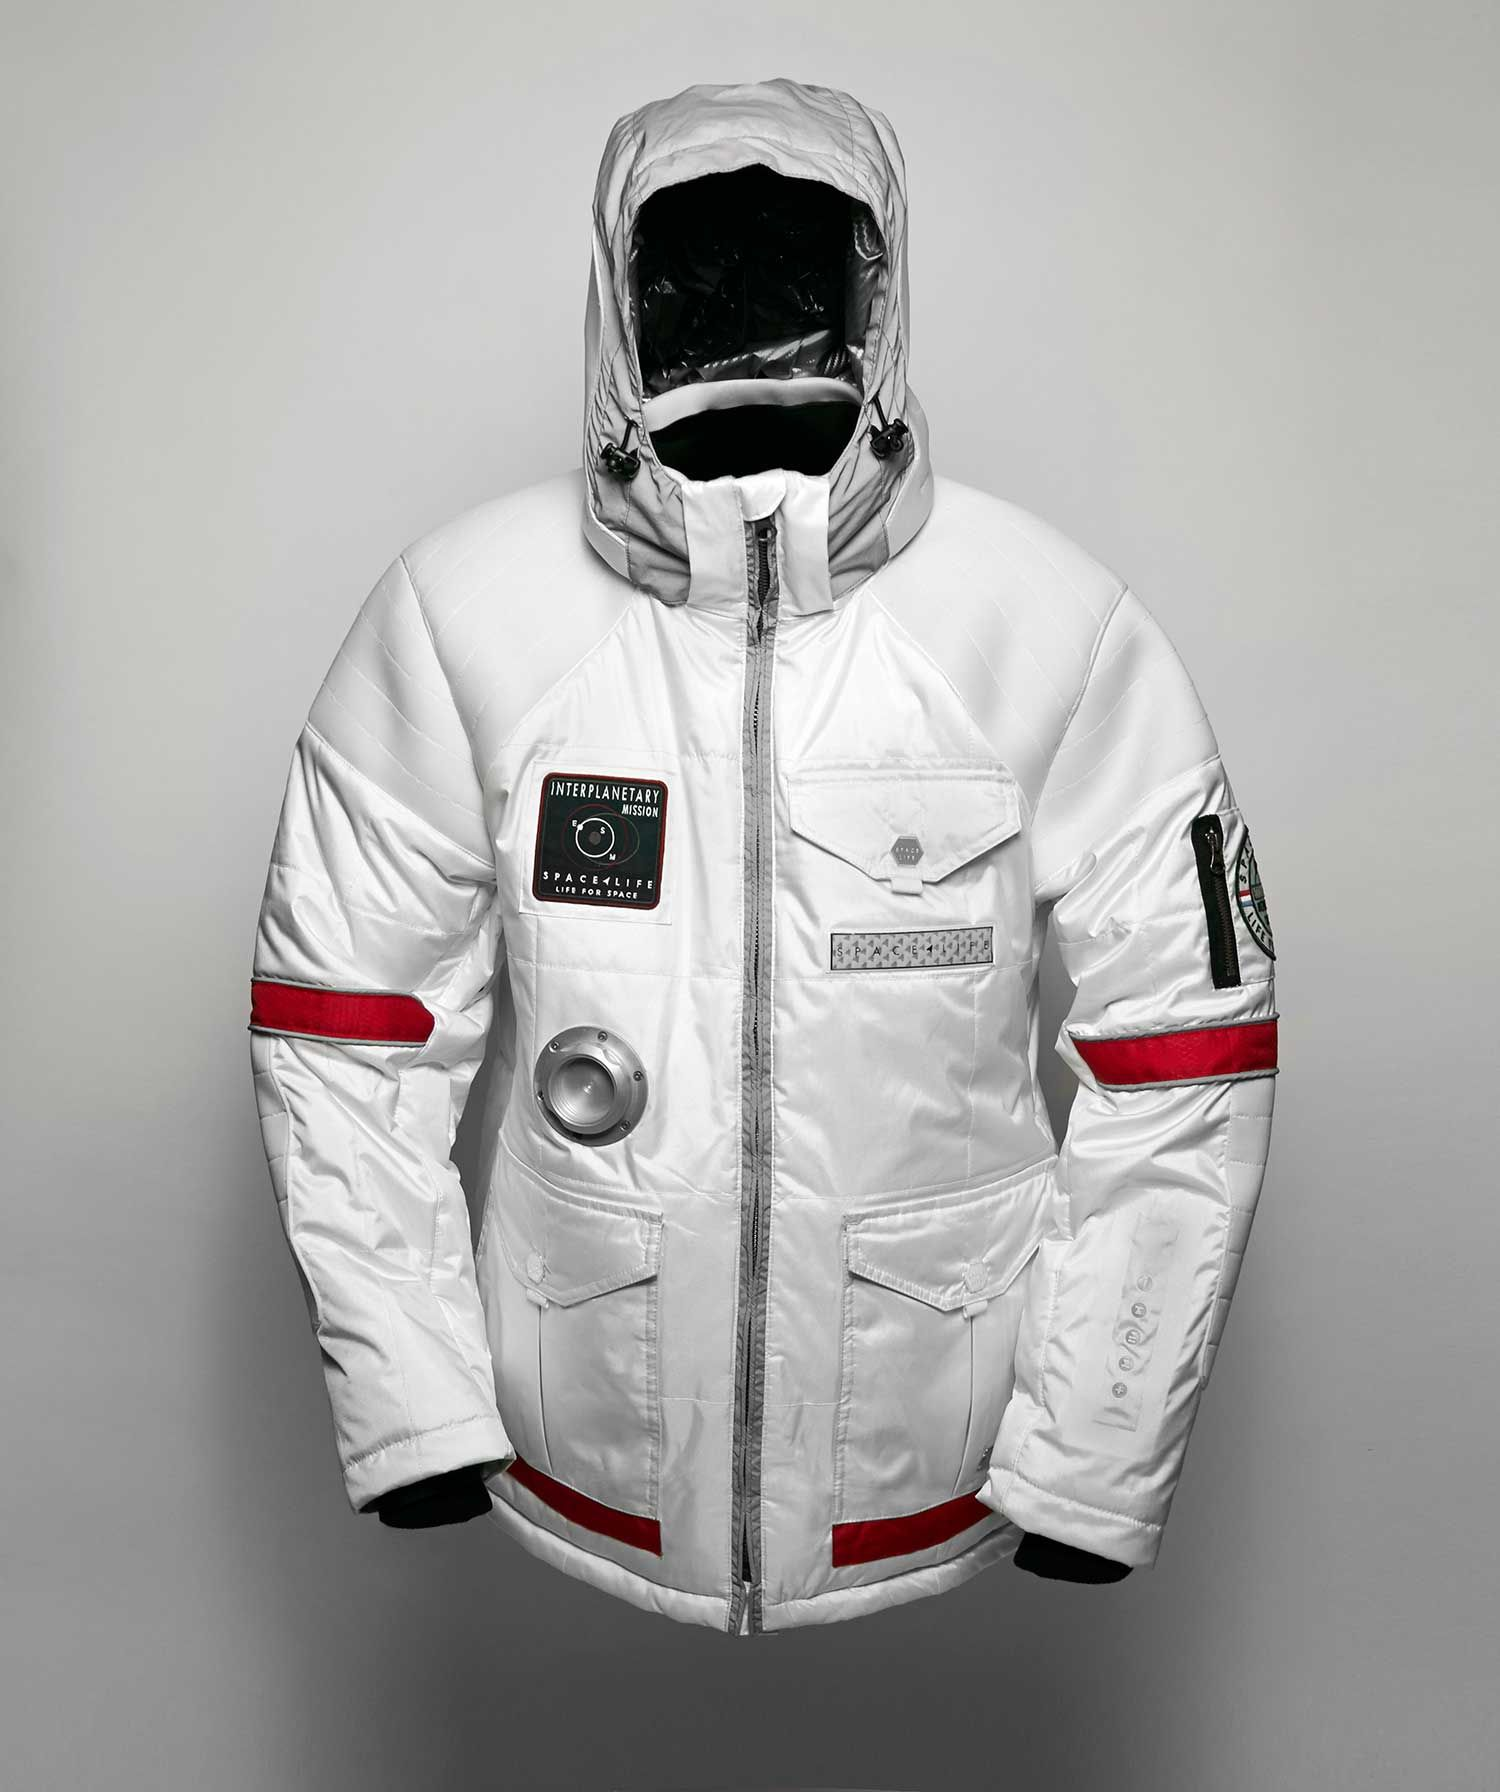 f7fd43c3f5 introducing-spacelife-astronaut-inspired-menswear-3 Space Suits